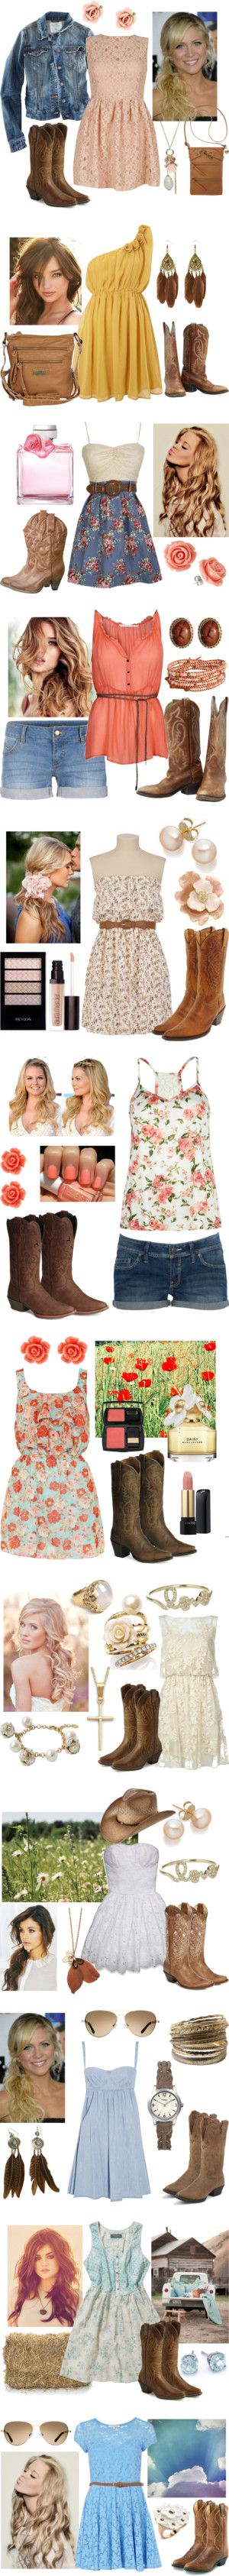 country outfits!